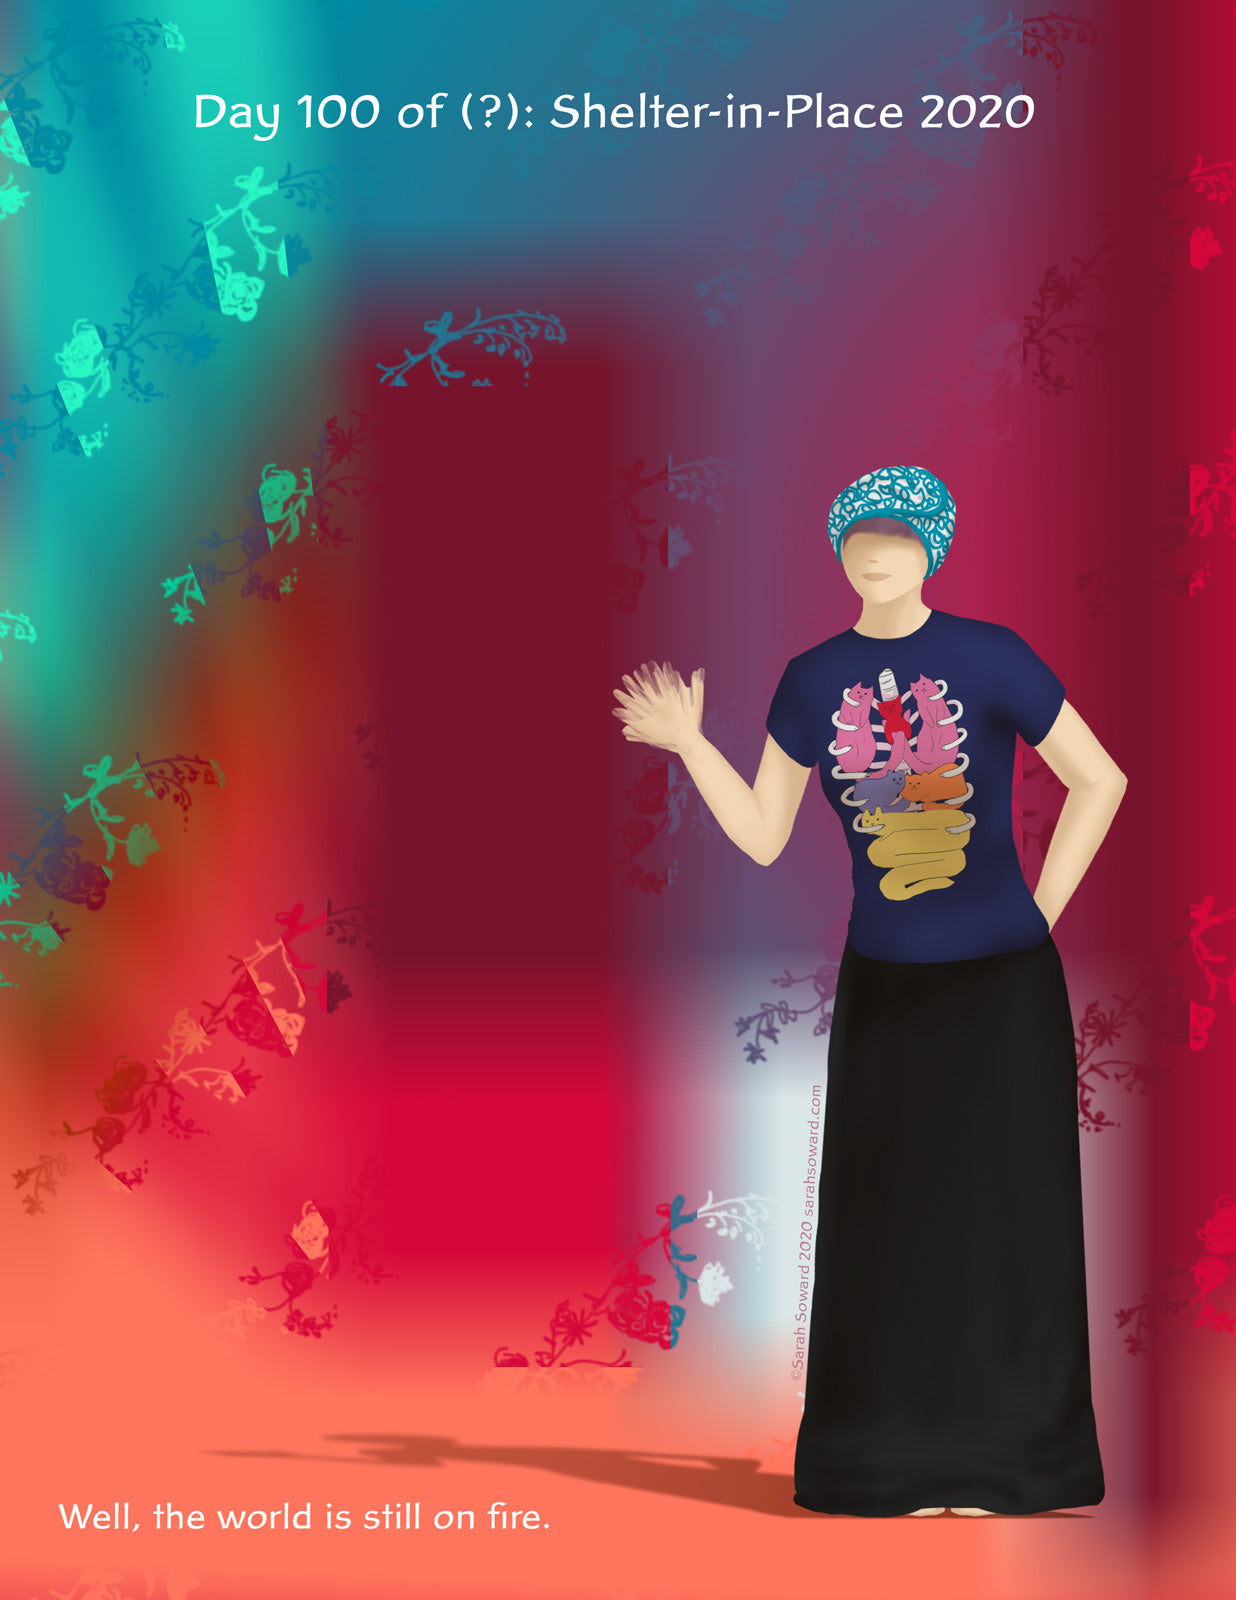 Image of a woman standing in front of amorphous, shifting shapes in gradations of colors. She's waving, her hair is wrapped up, she's wearing a long skirt and a shirt that appears to depict organs as cute kitty cats. The text on the image reads  Well, the world is still on fire.